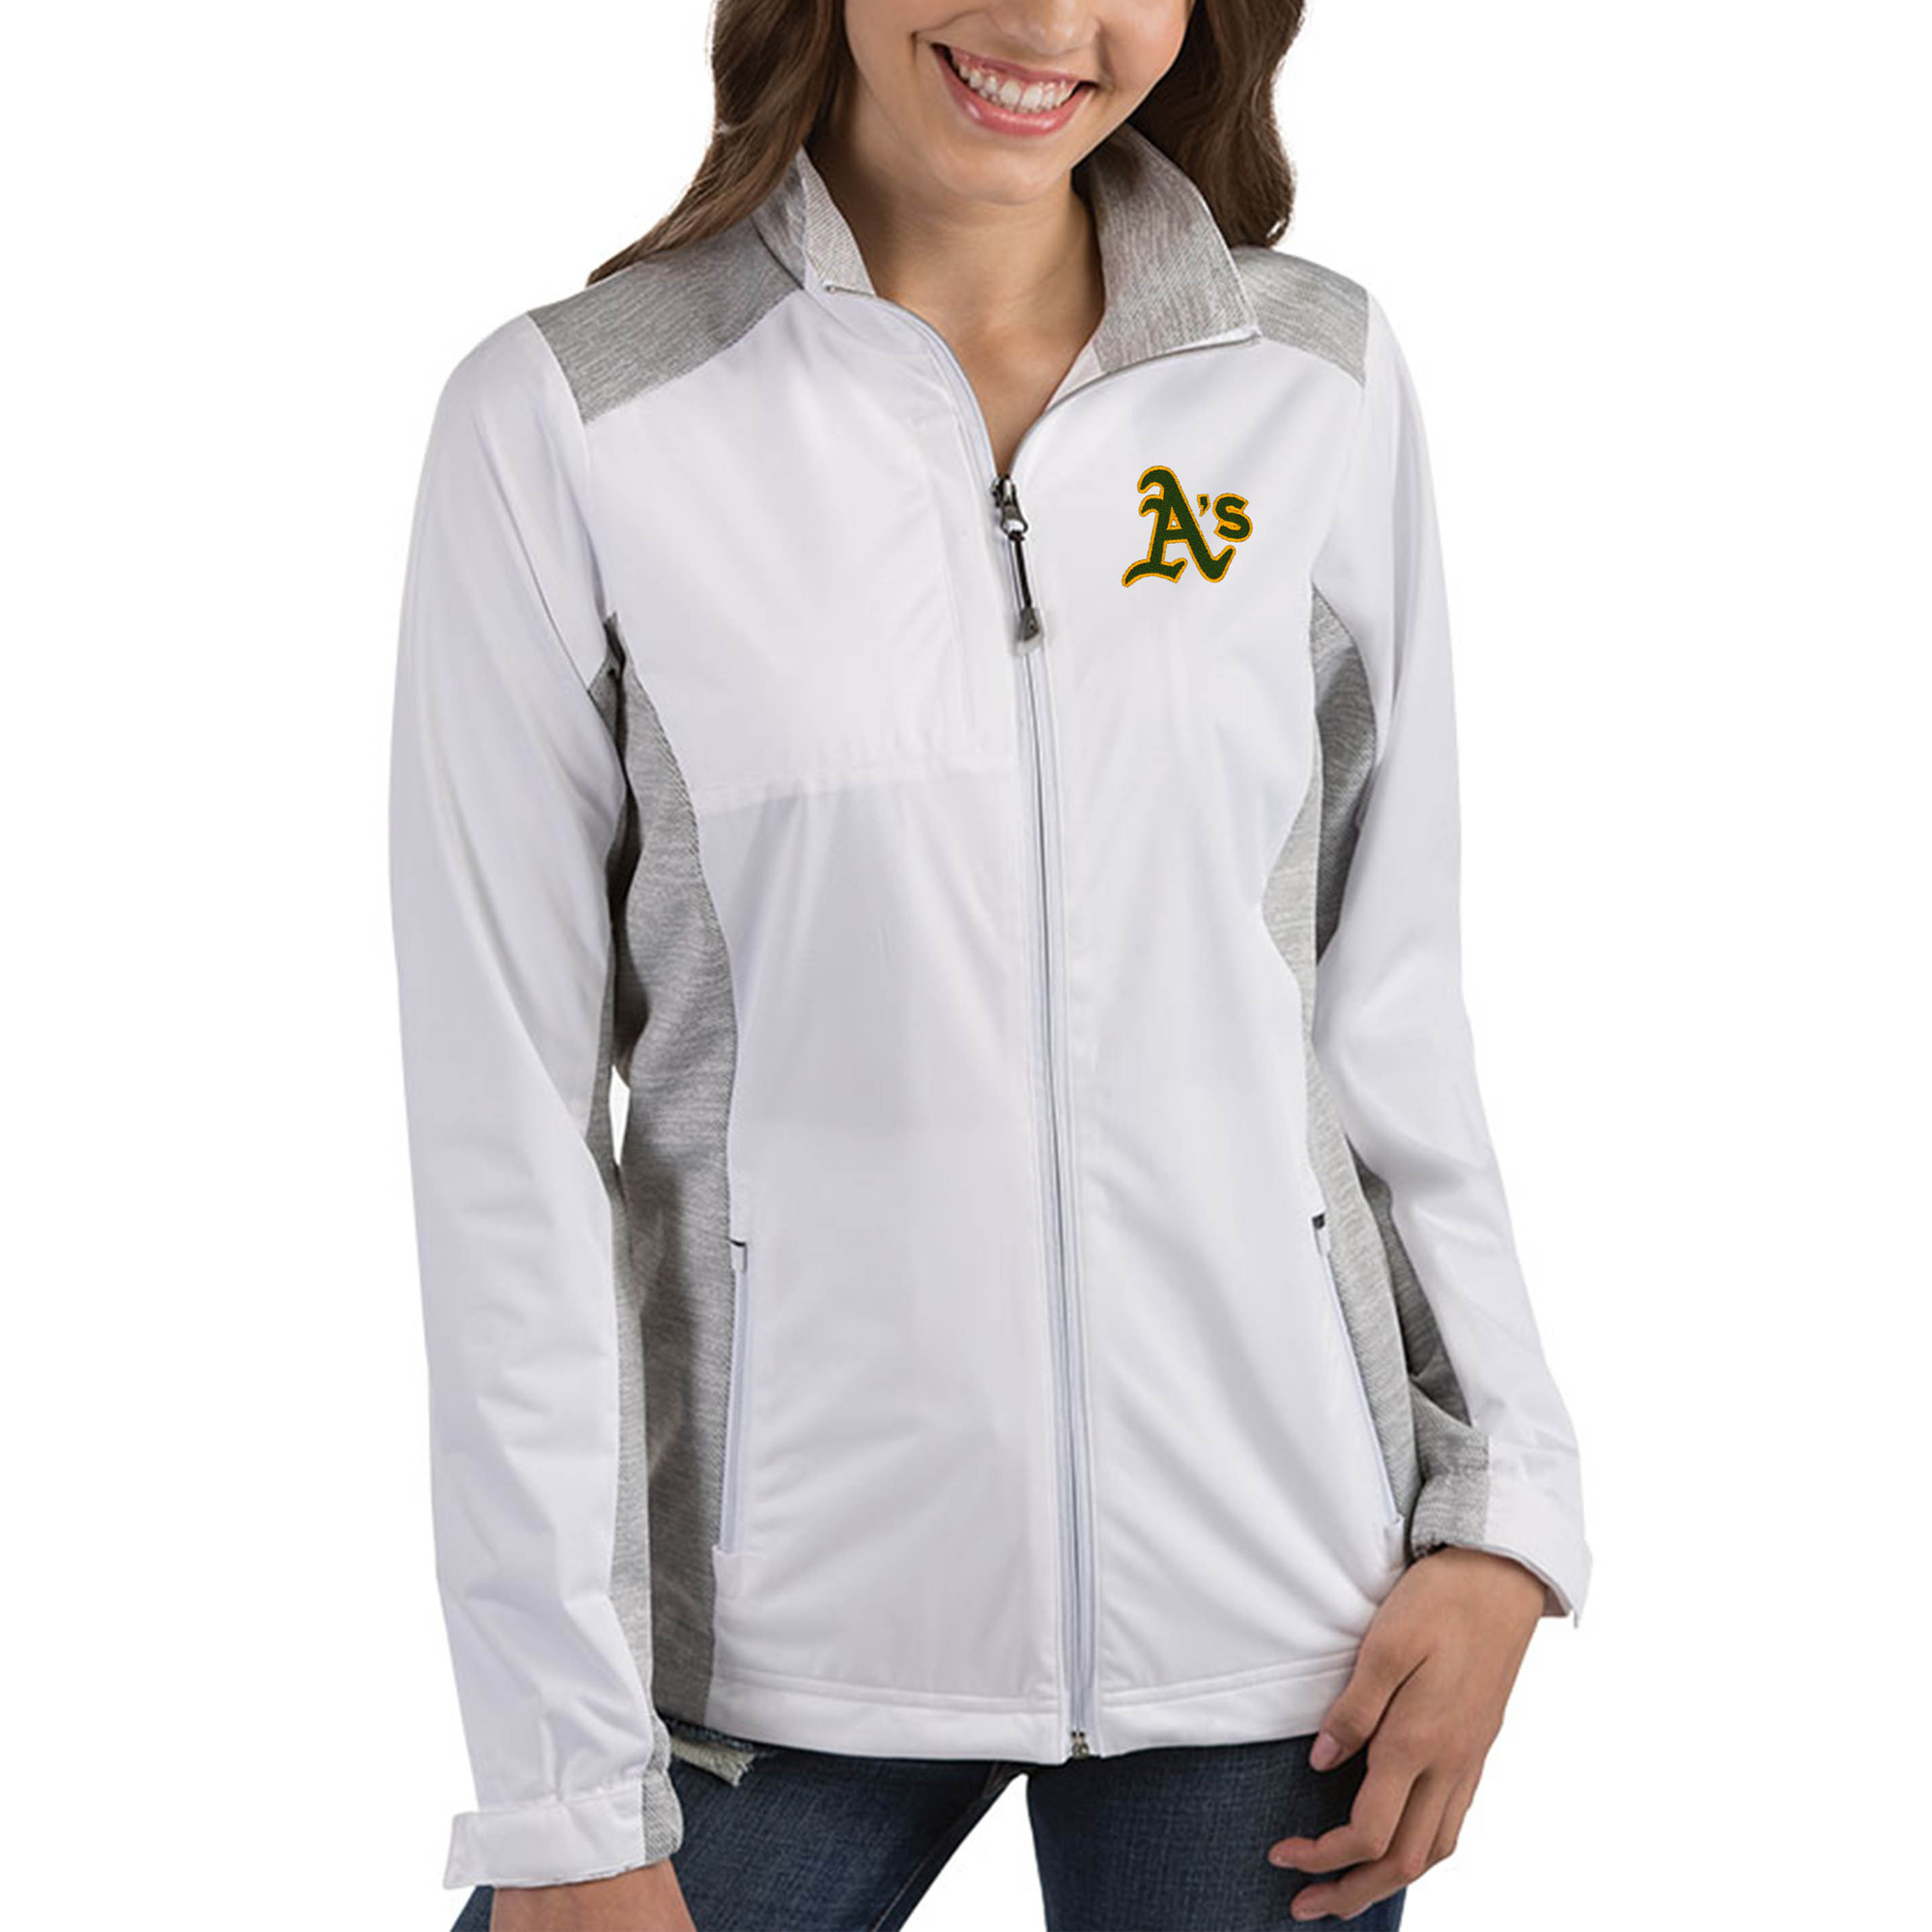 Oakland Athletics Antigua Women's Revolve Full-Zip Jacket - White